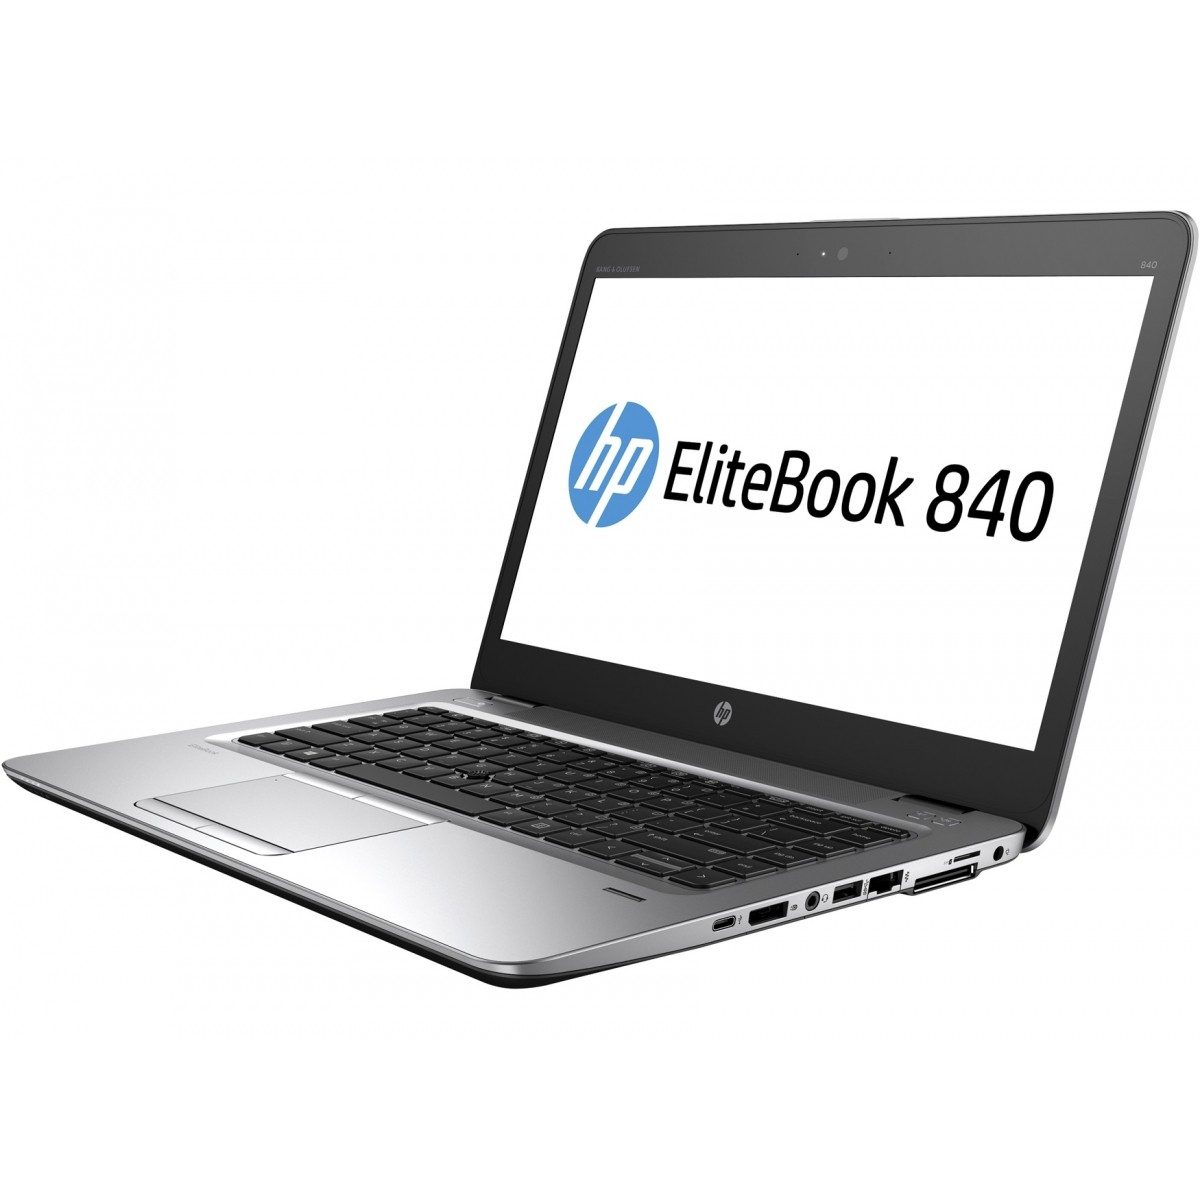 Notebook HP ELITEBOOK 840 G3 - Intel Core i5, 4GB de memória, HD 500GB, Leitor Biometrico, Tela 14